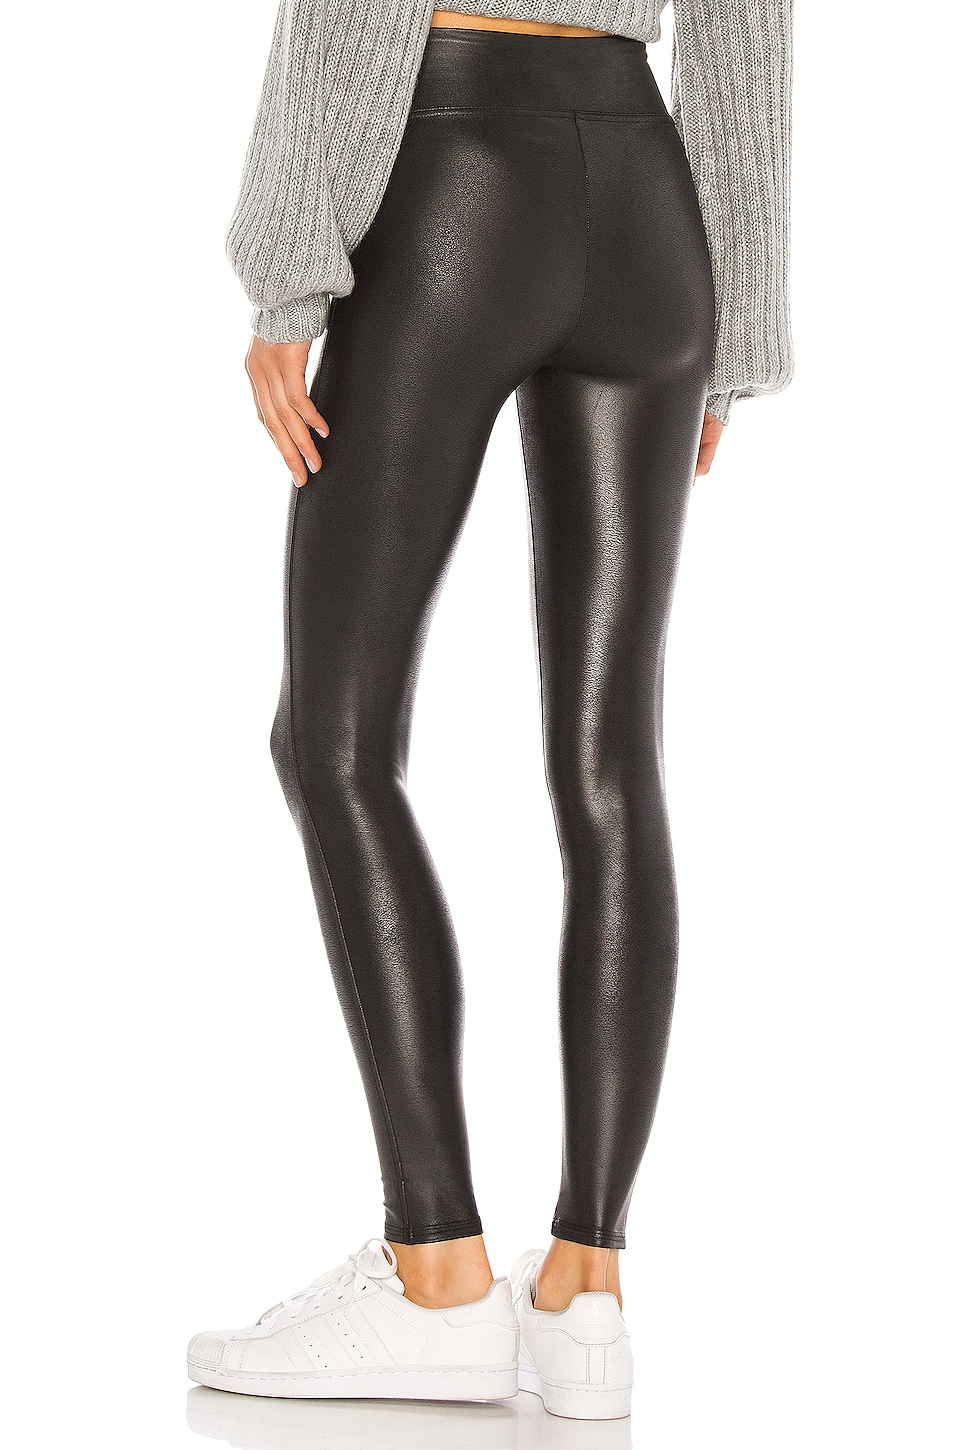 Petite Faux Leather Legging, view 3, click to view large image.